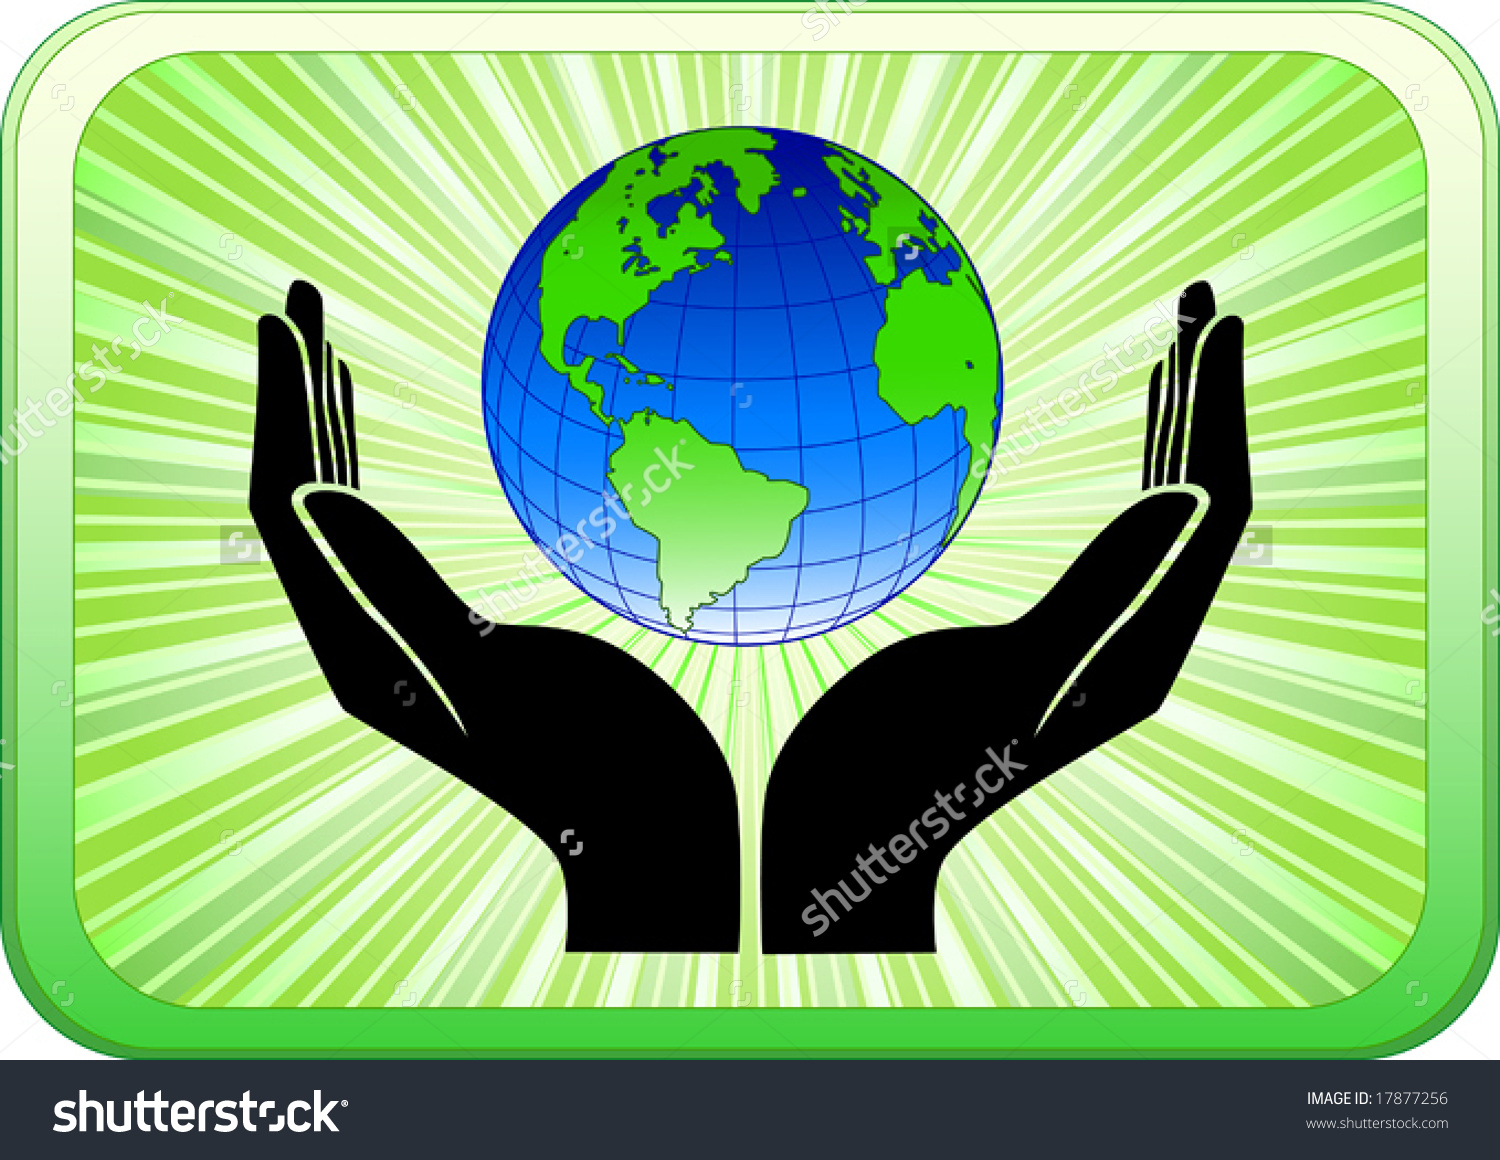 Hands Holding The Earth Clipart (62+).